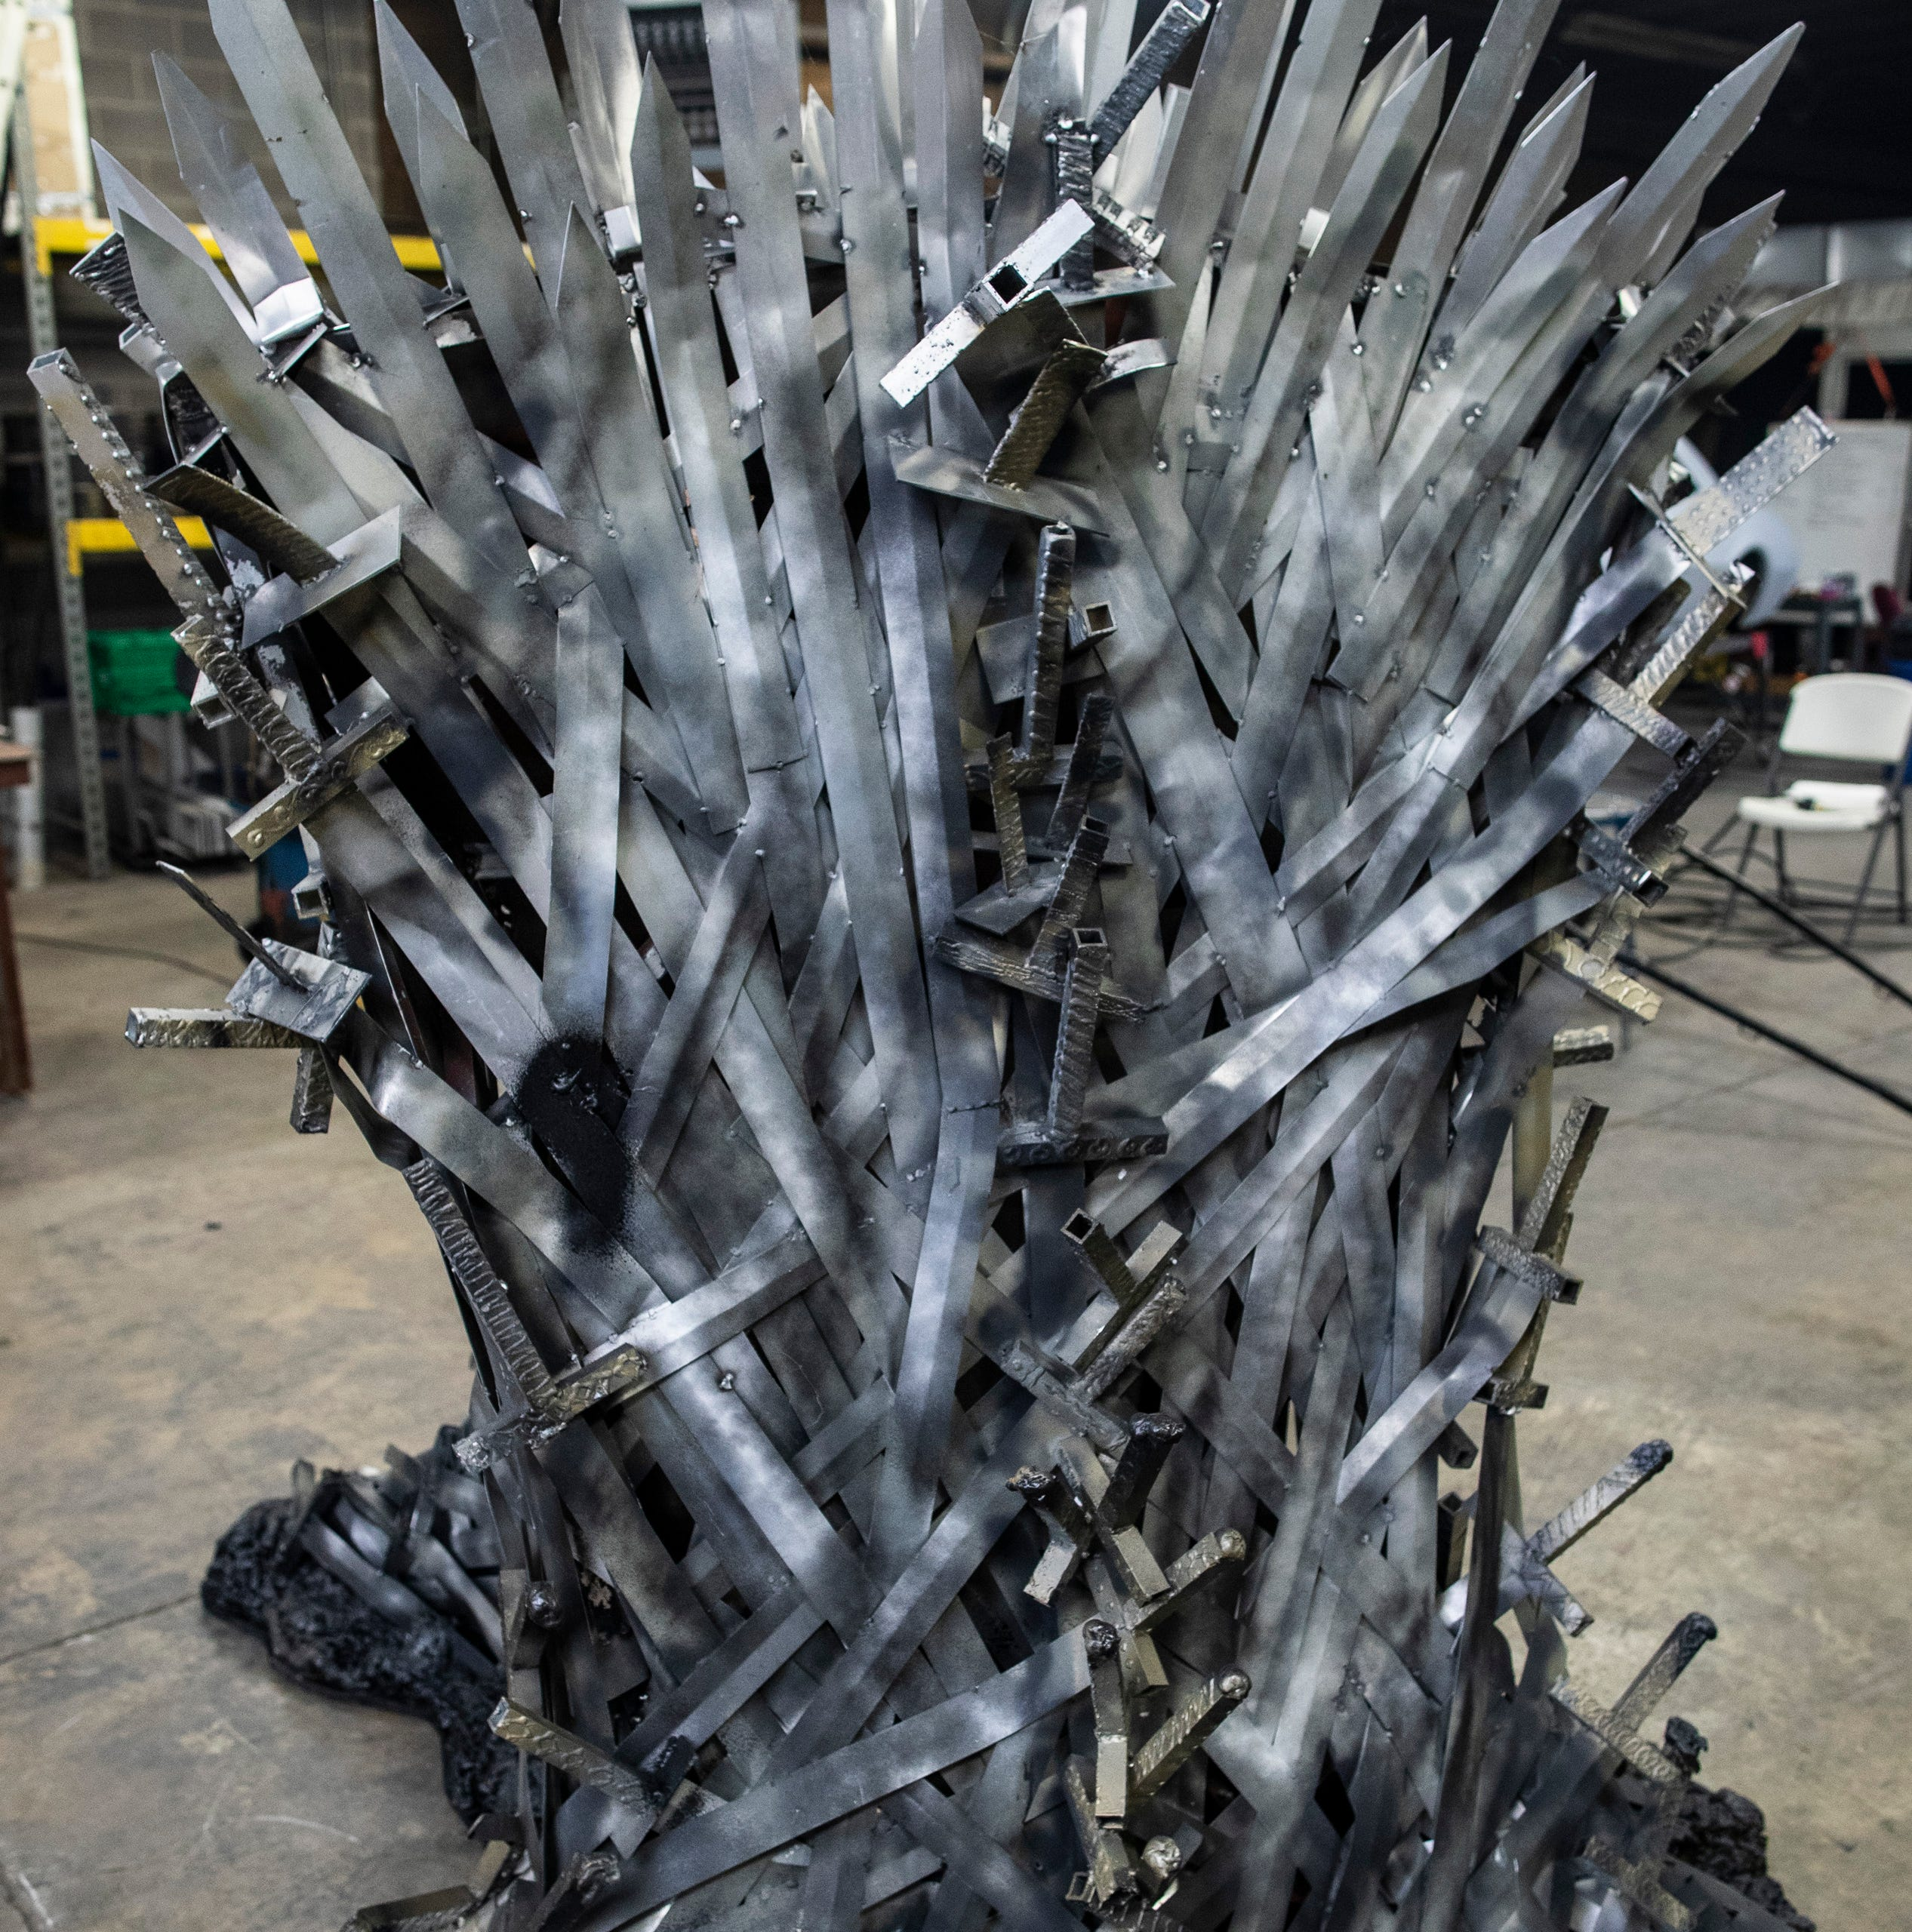 A rear view of the full-size replica of the Iron Throne on the Game of Thrones HBO series was made by students at the Knight School of Welding on 39th Street in Louisville. April 19, 2019